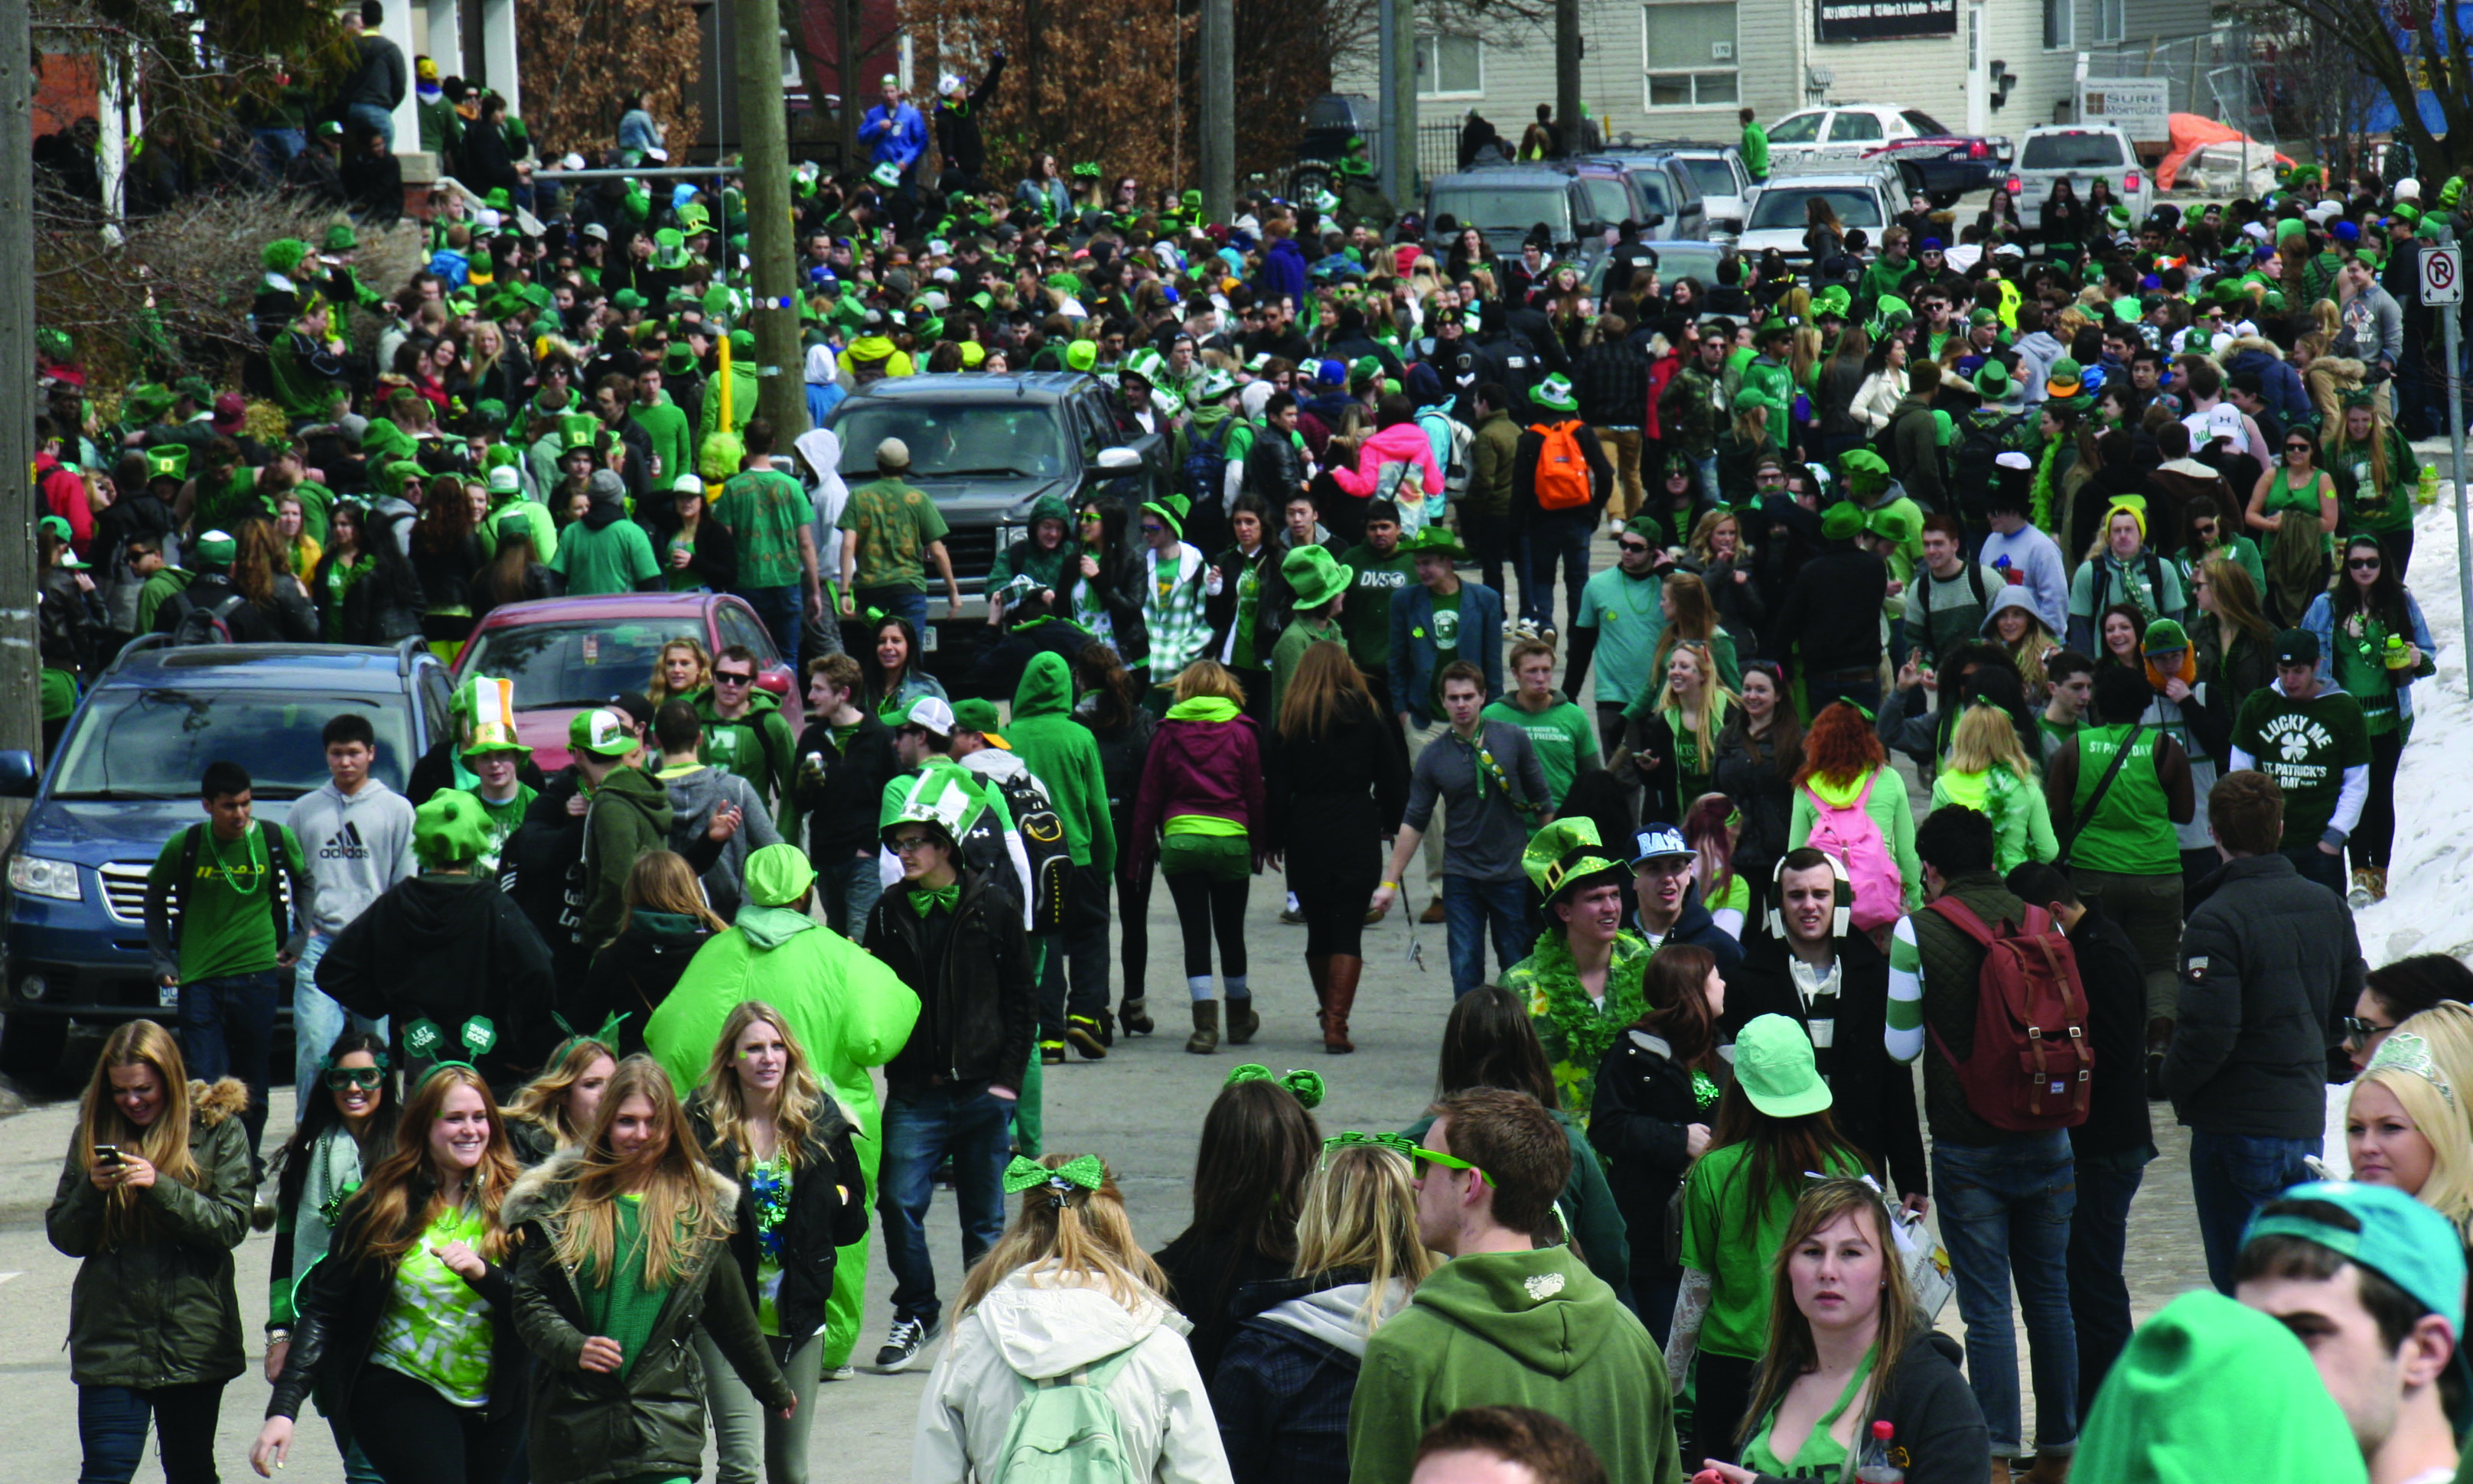 Last year's Ezra St. Paddy's Day festivities brought out more than 7,000 people (Photo by Shelby Blackley)